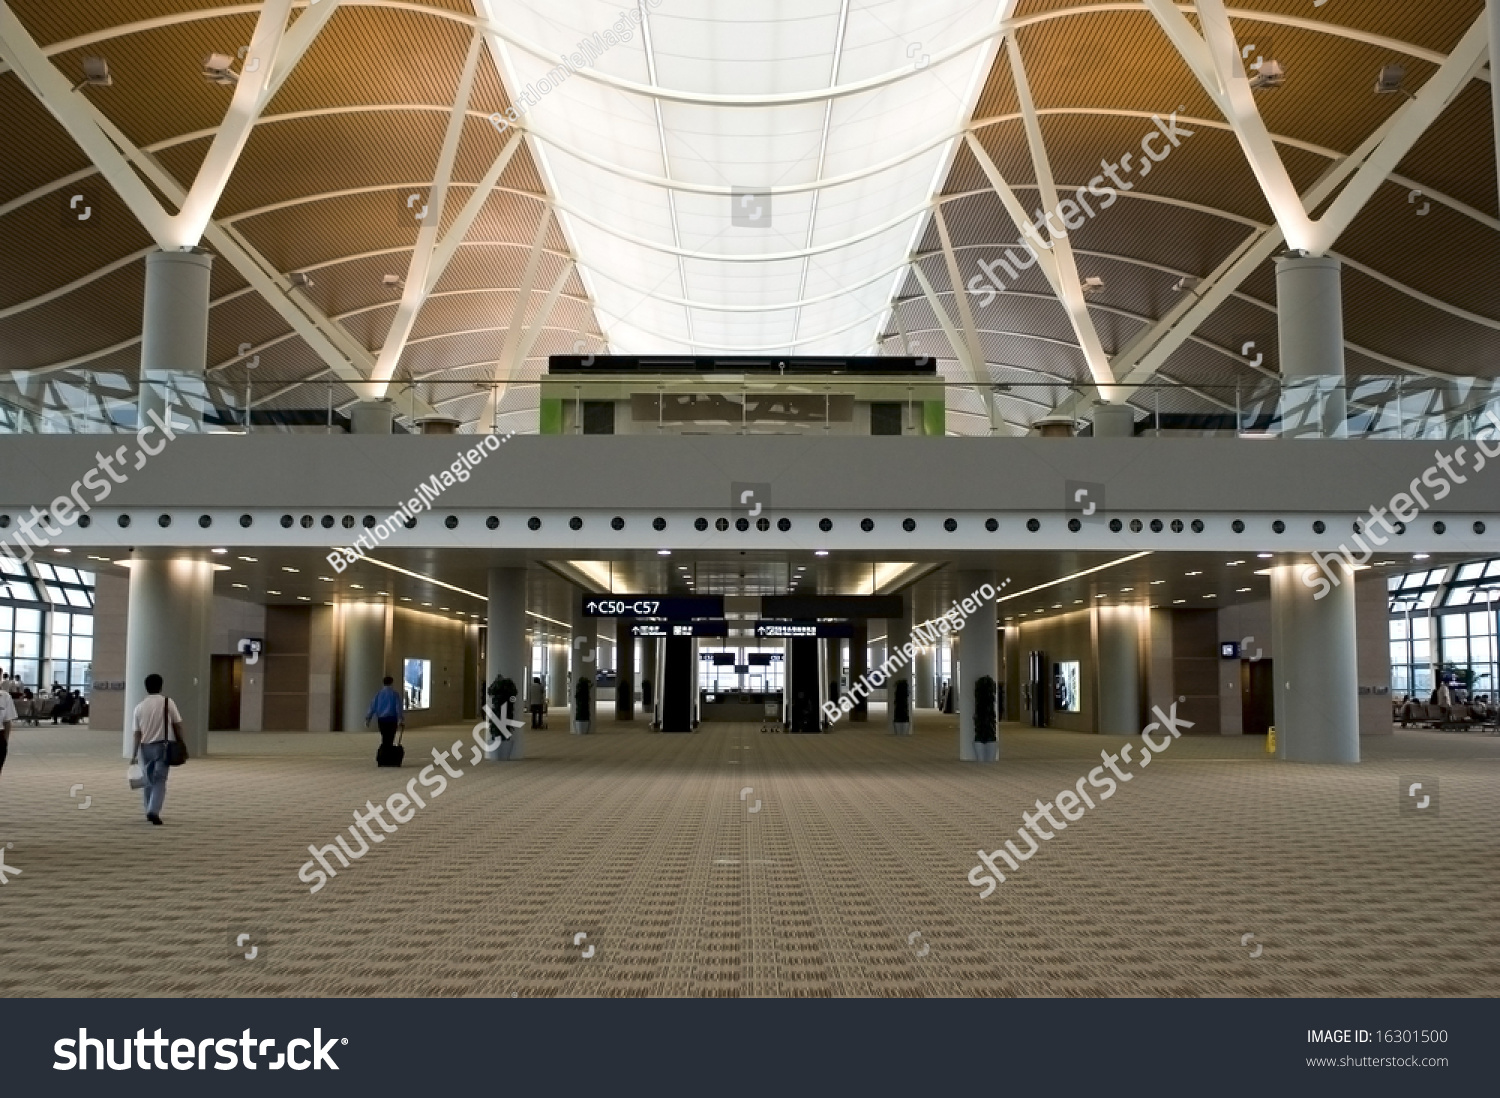 New. Second Terminal At Shanghai Pudong International Airport In China. Stock Photo 16301500 : Shutterstock